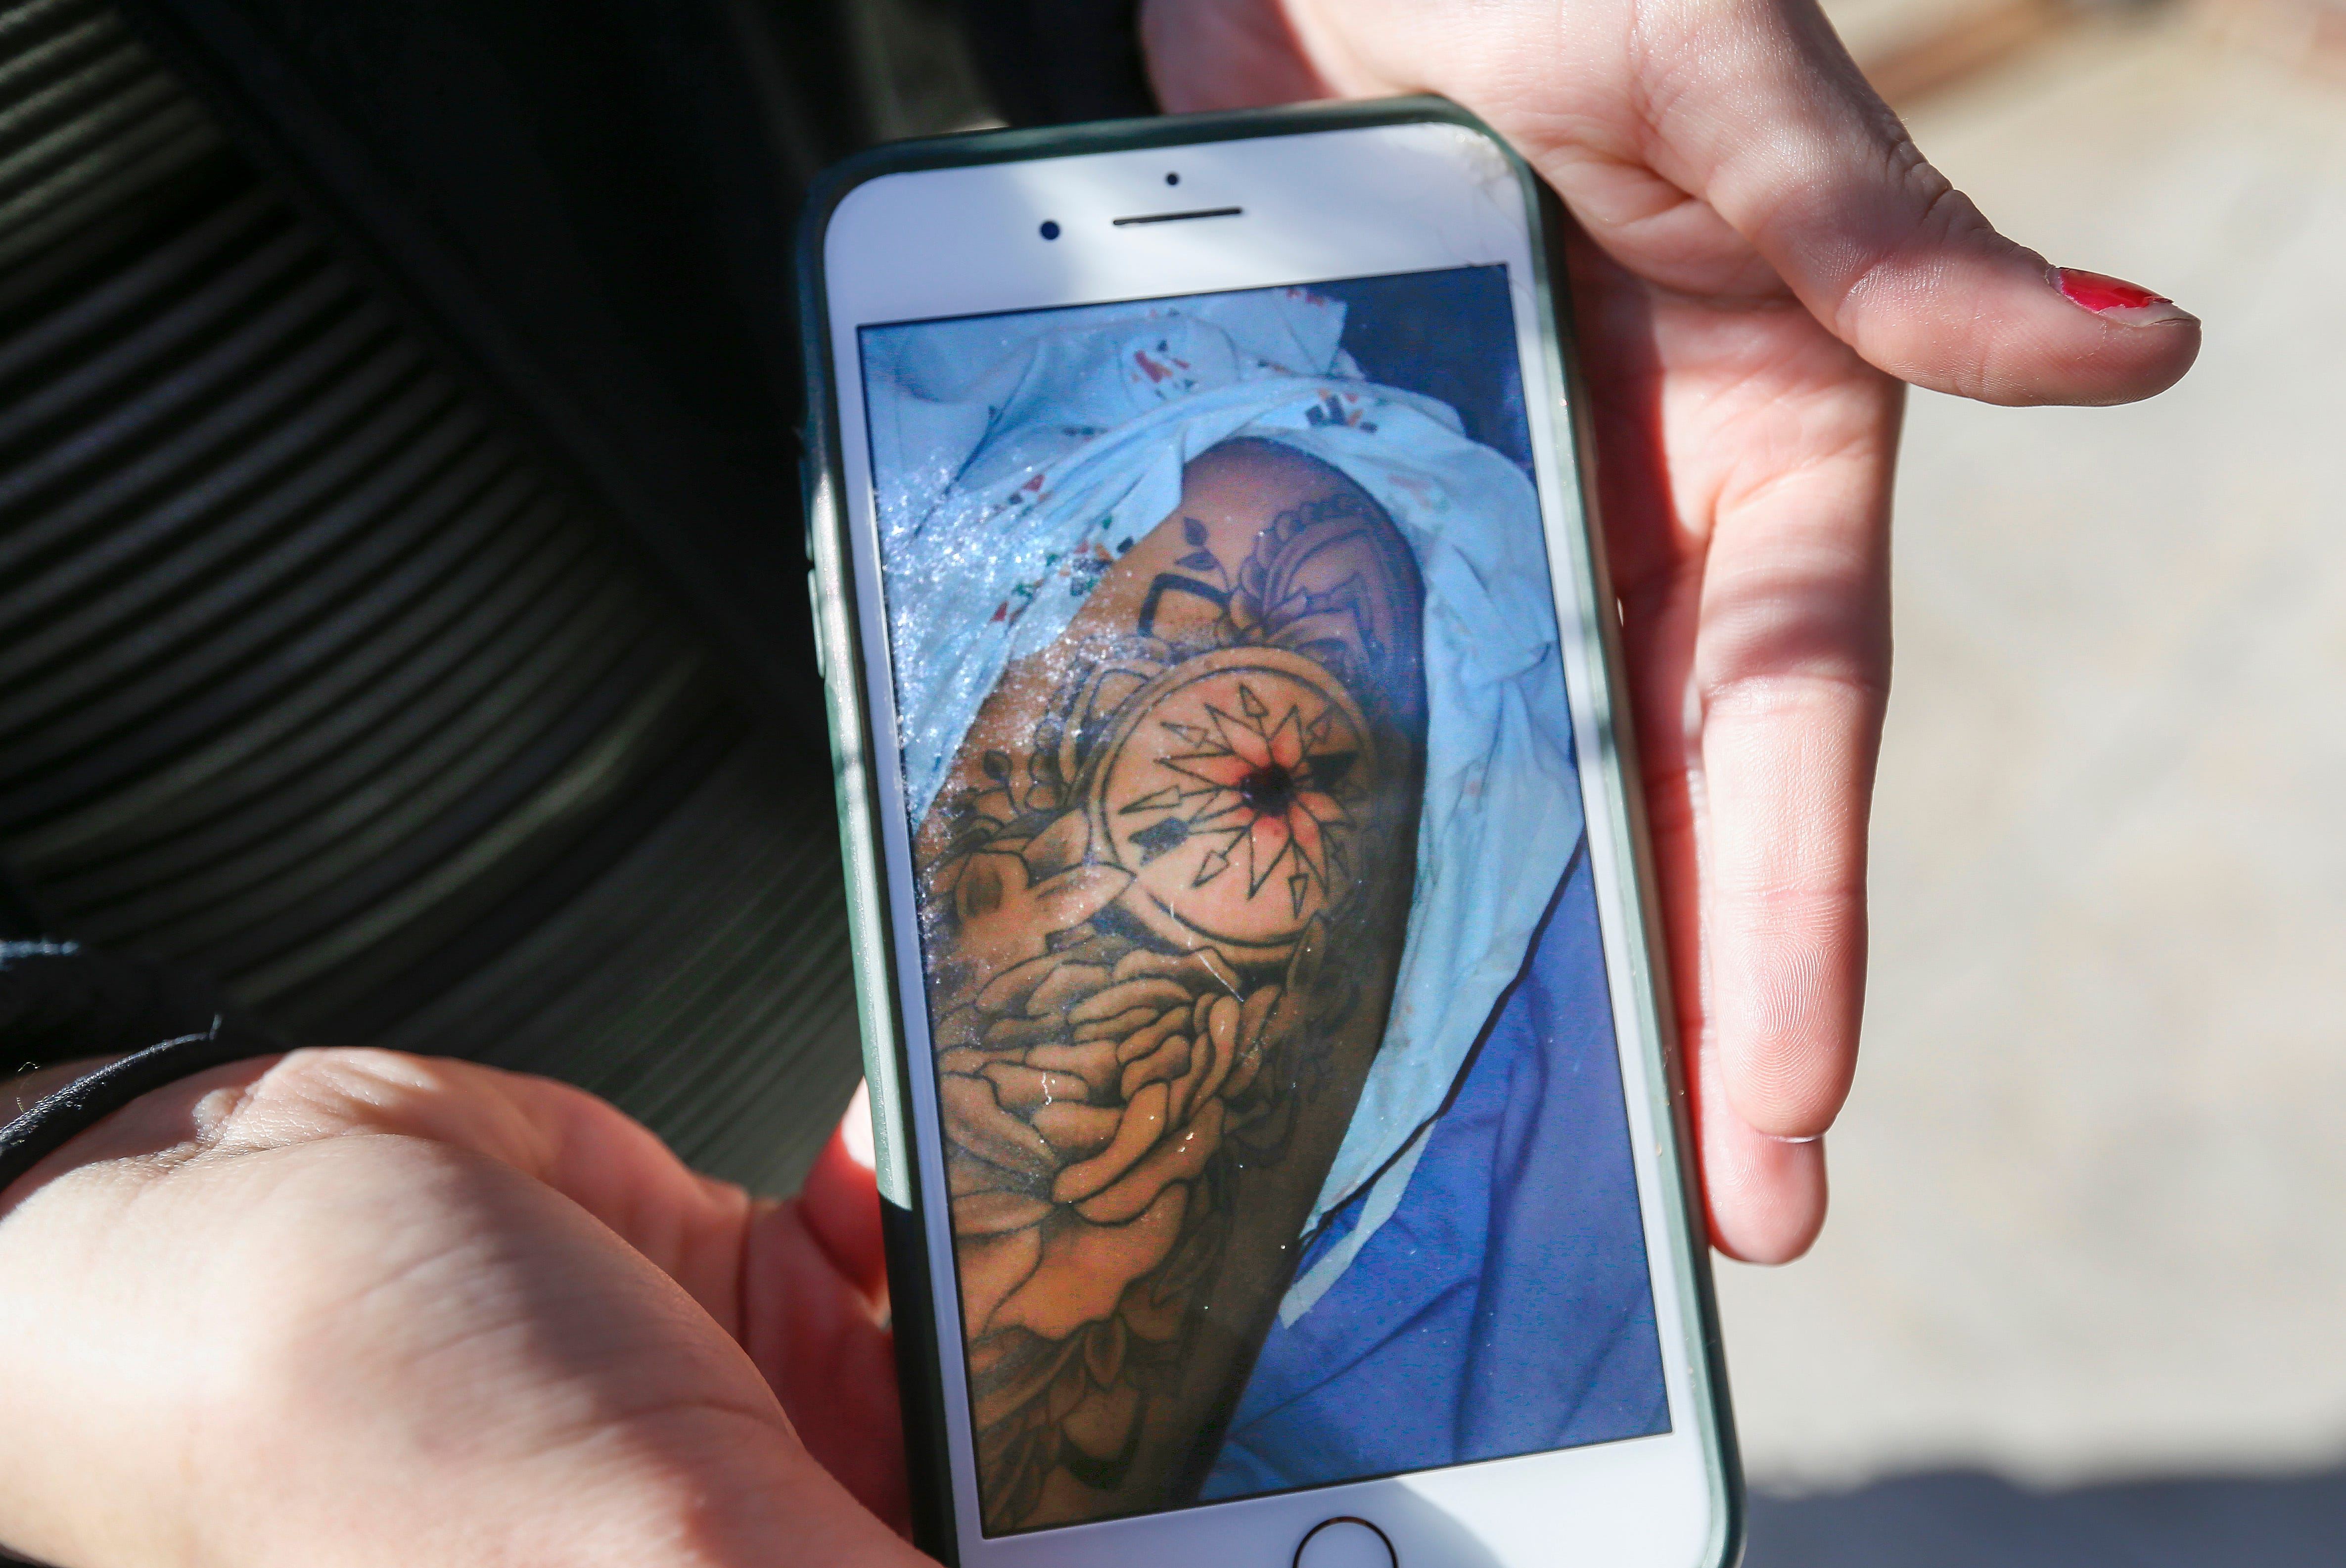 Kahlie Clark displays a photo on her cell phone of a bullet wound she sustained after being shot in the arm while spending time with friends at Tropical Liqueurs in downtown Springfield.